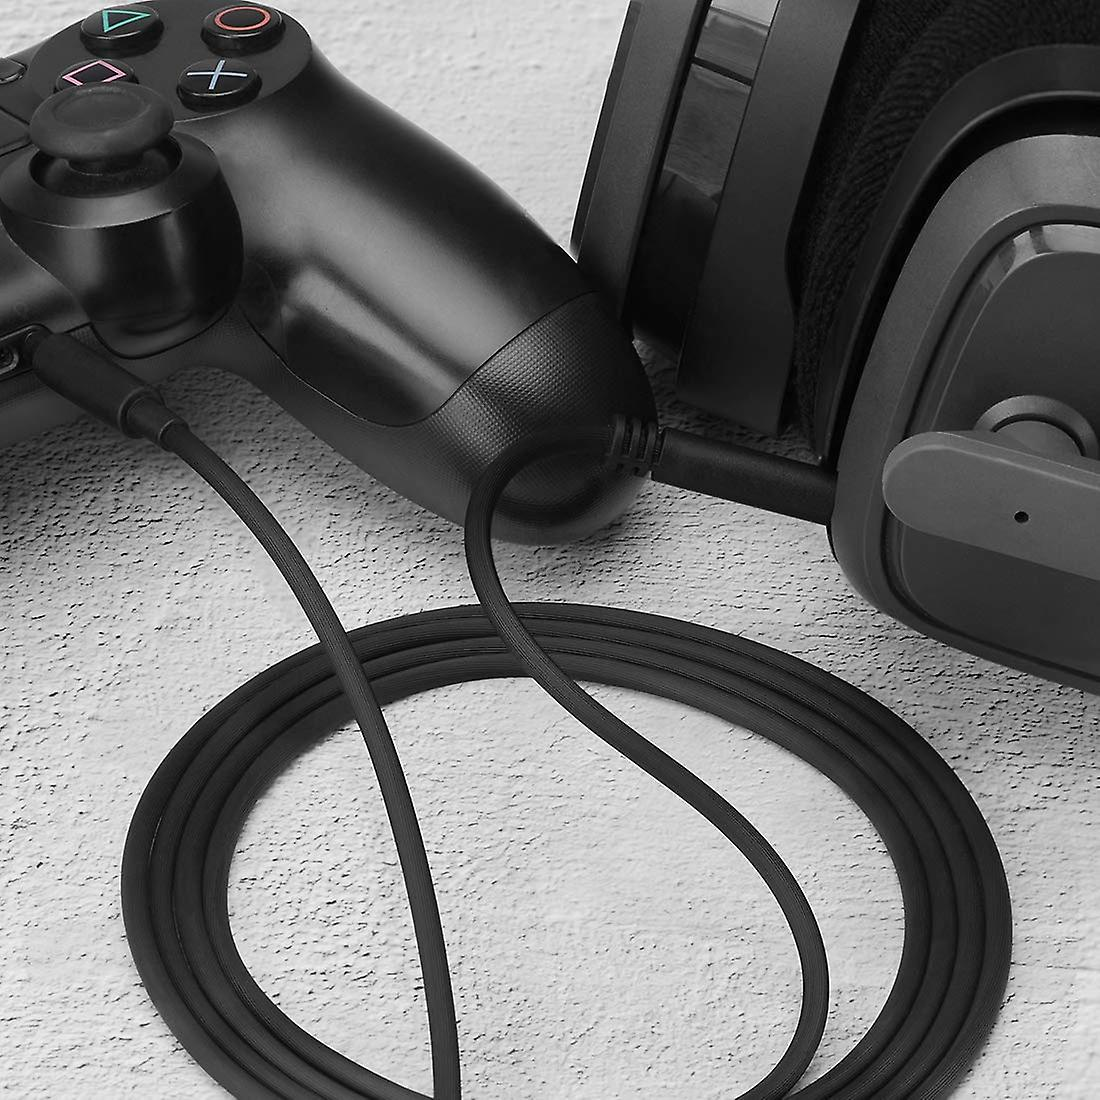 Replacement Astro Gaming Headset Mobile Aux Cable - A30, A40 Gen 1 & Gen 2 TR - Wireless Headphones Wire Lead